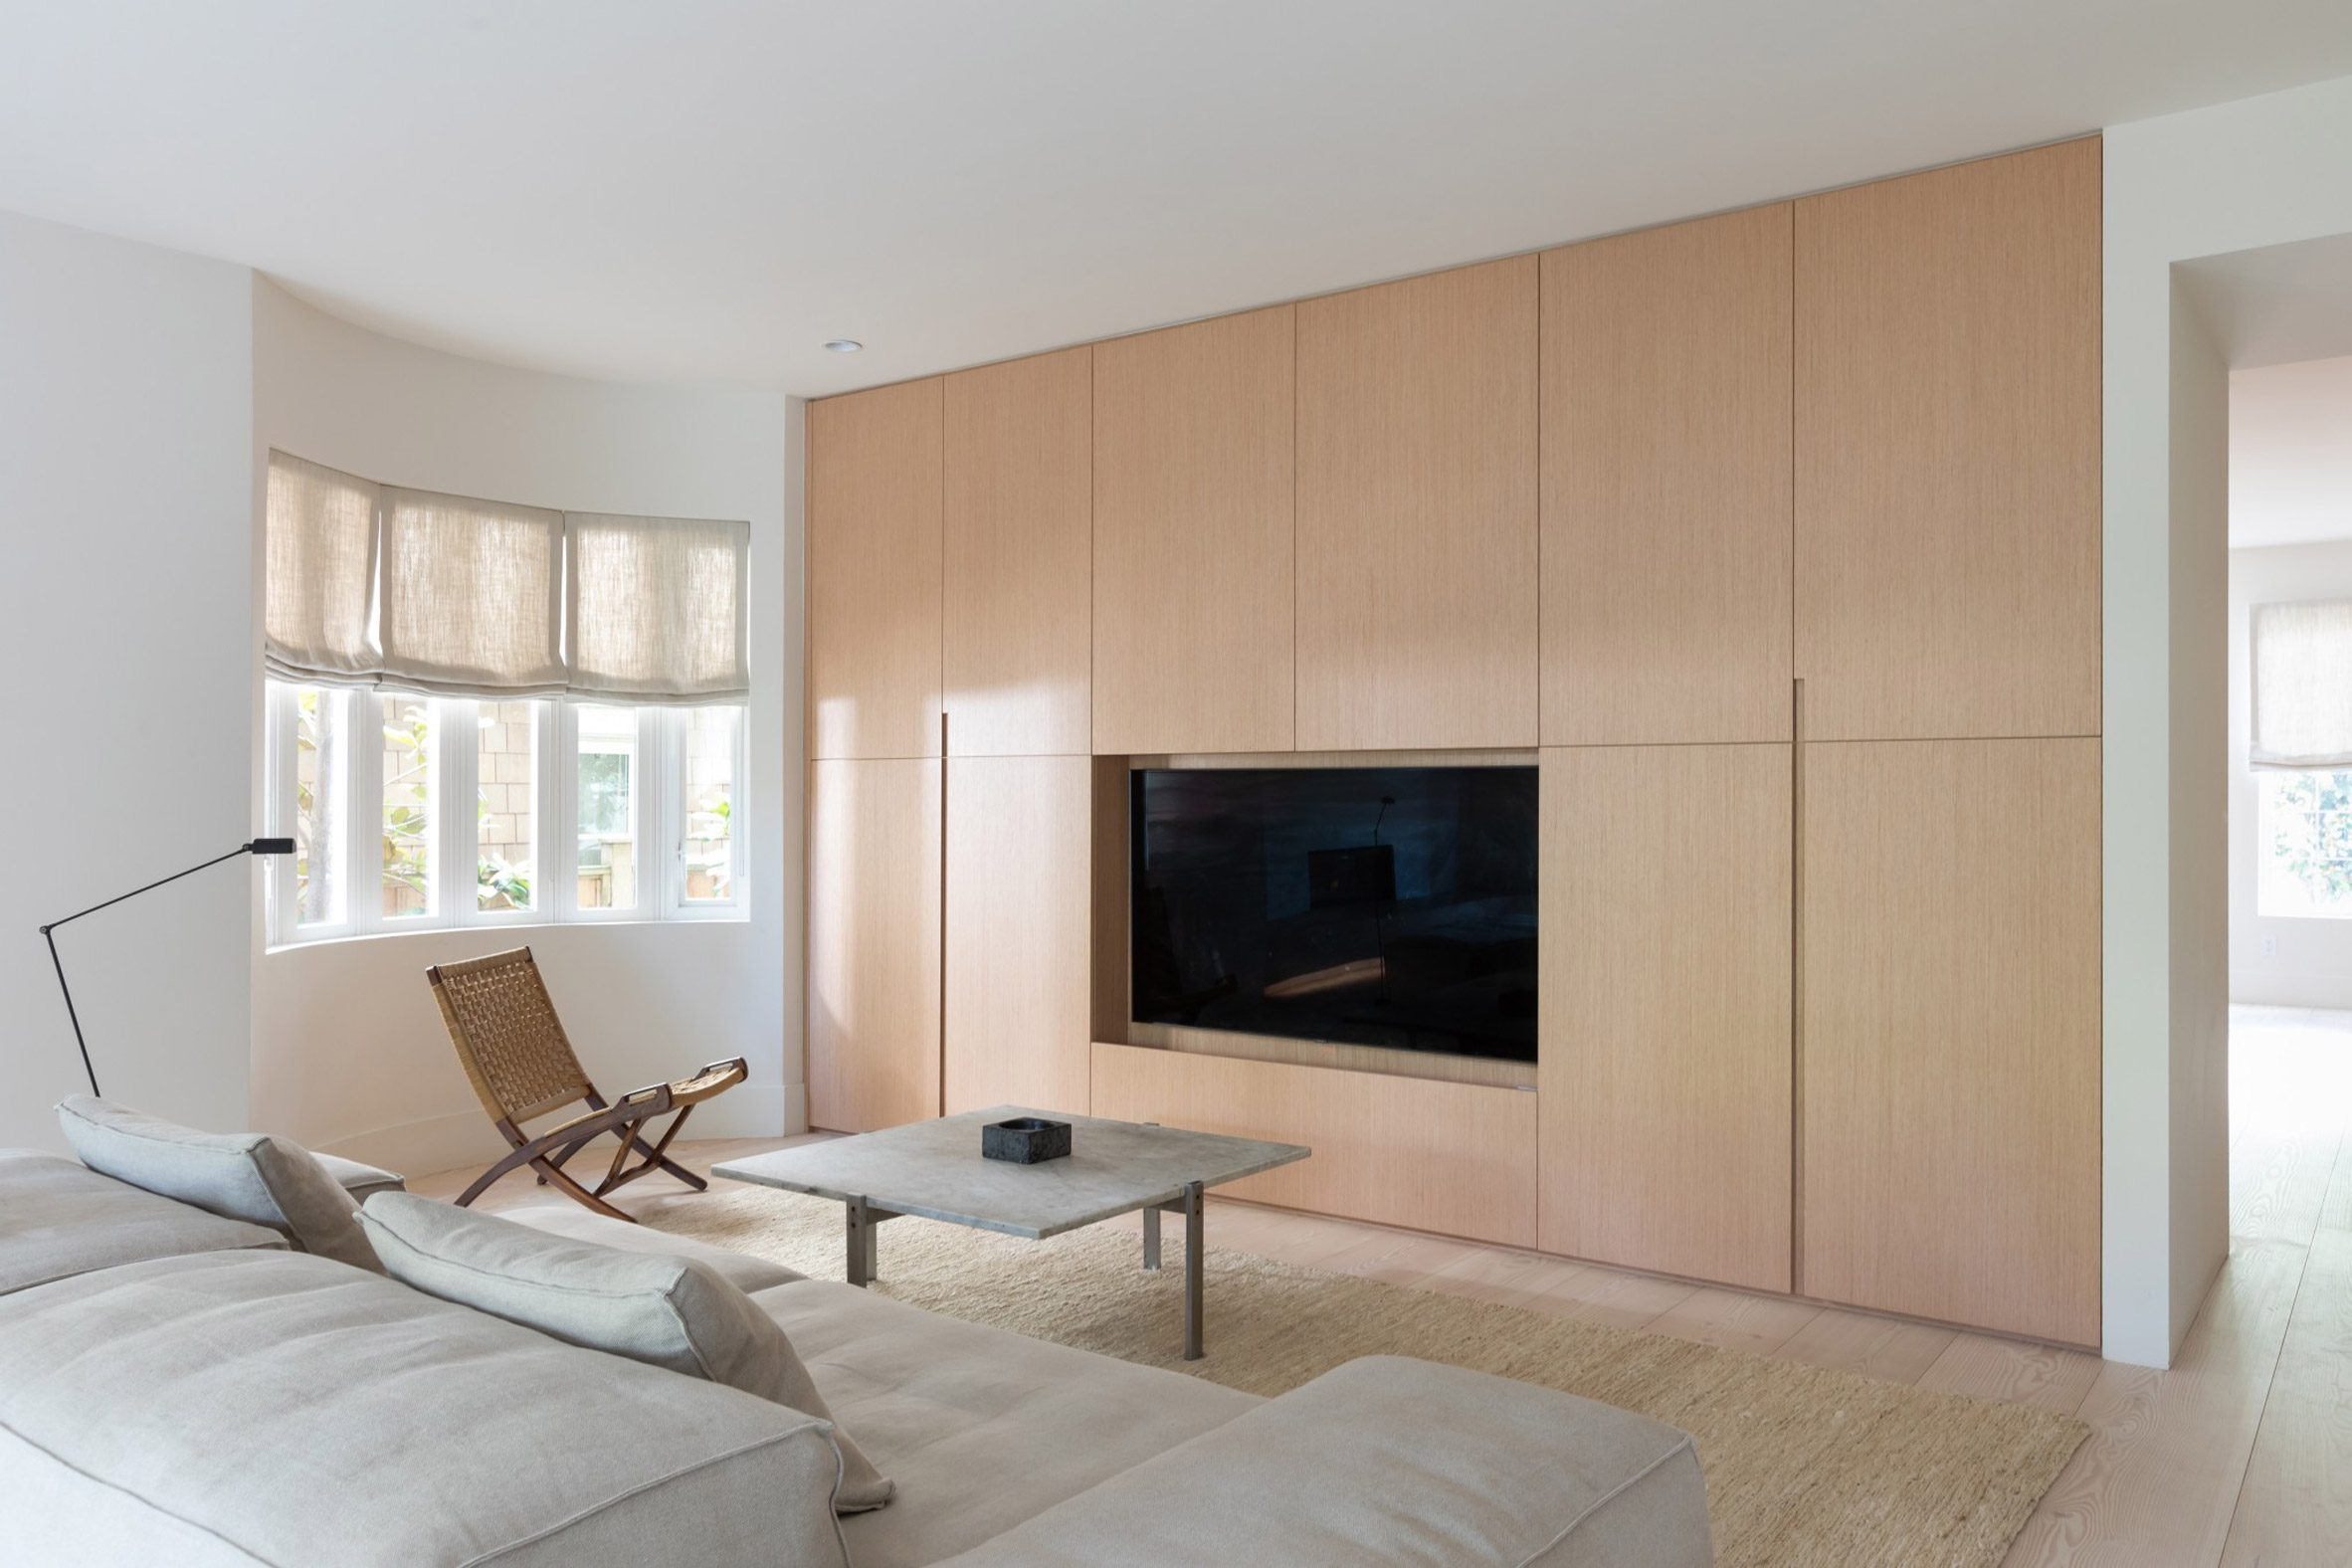 Wooden floors and oak cabinetry by untitled [design agency]